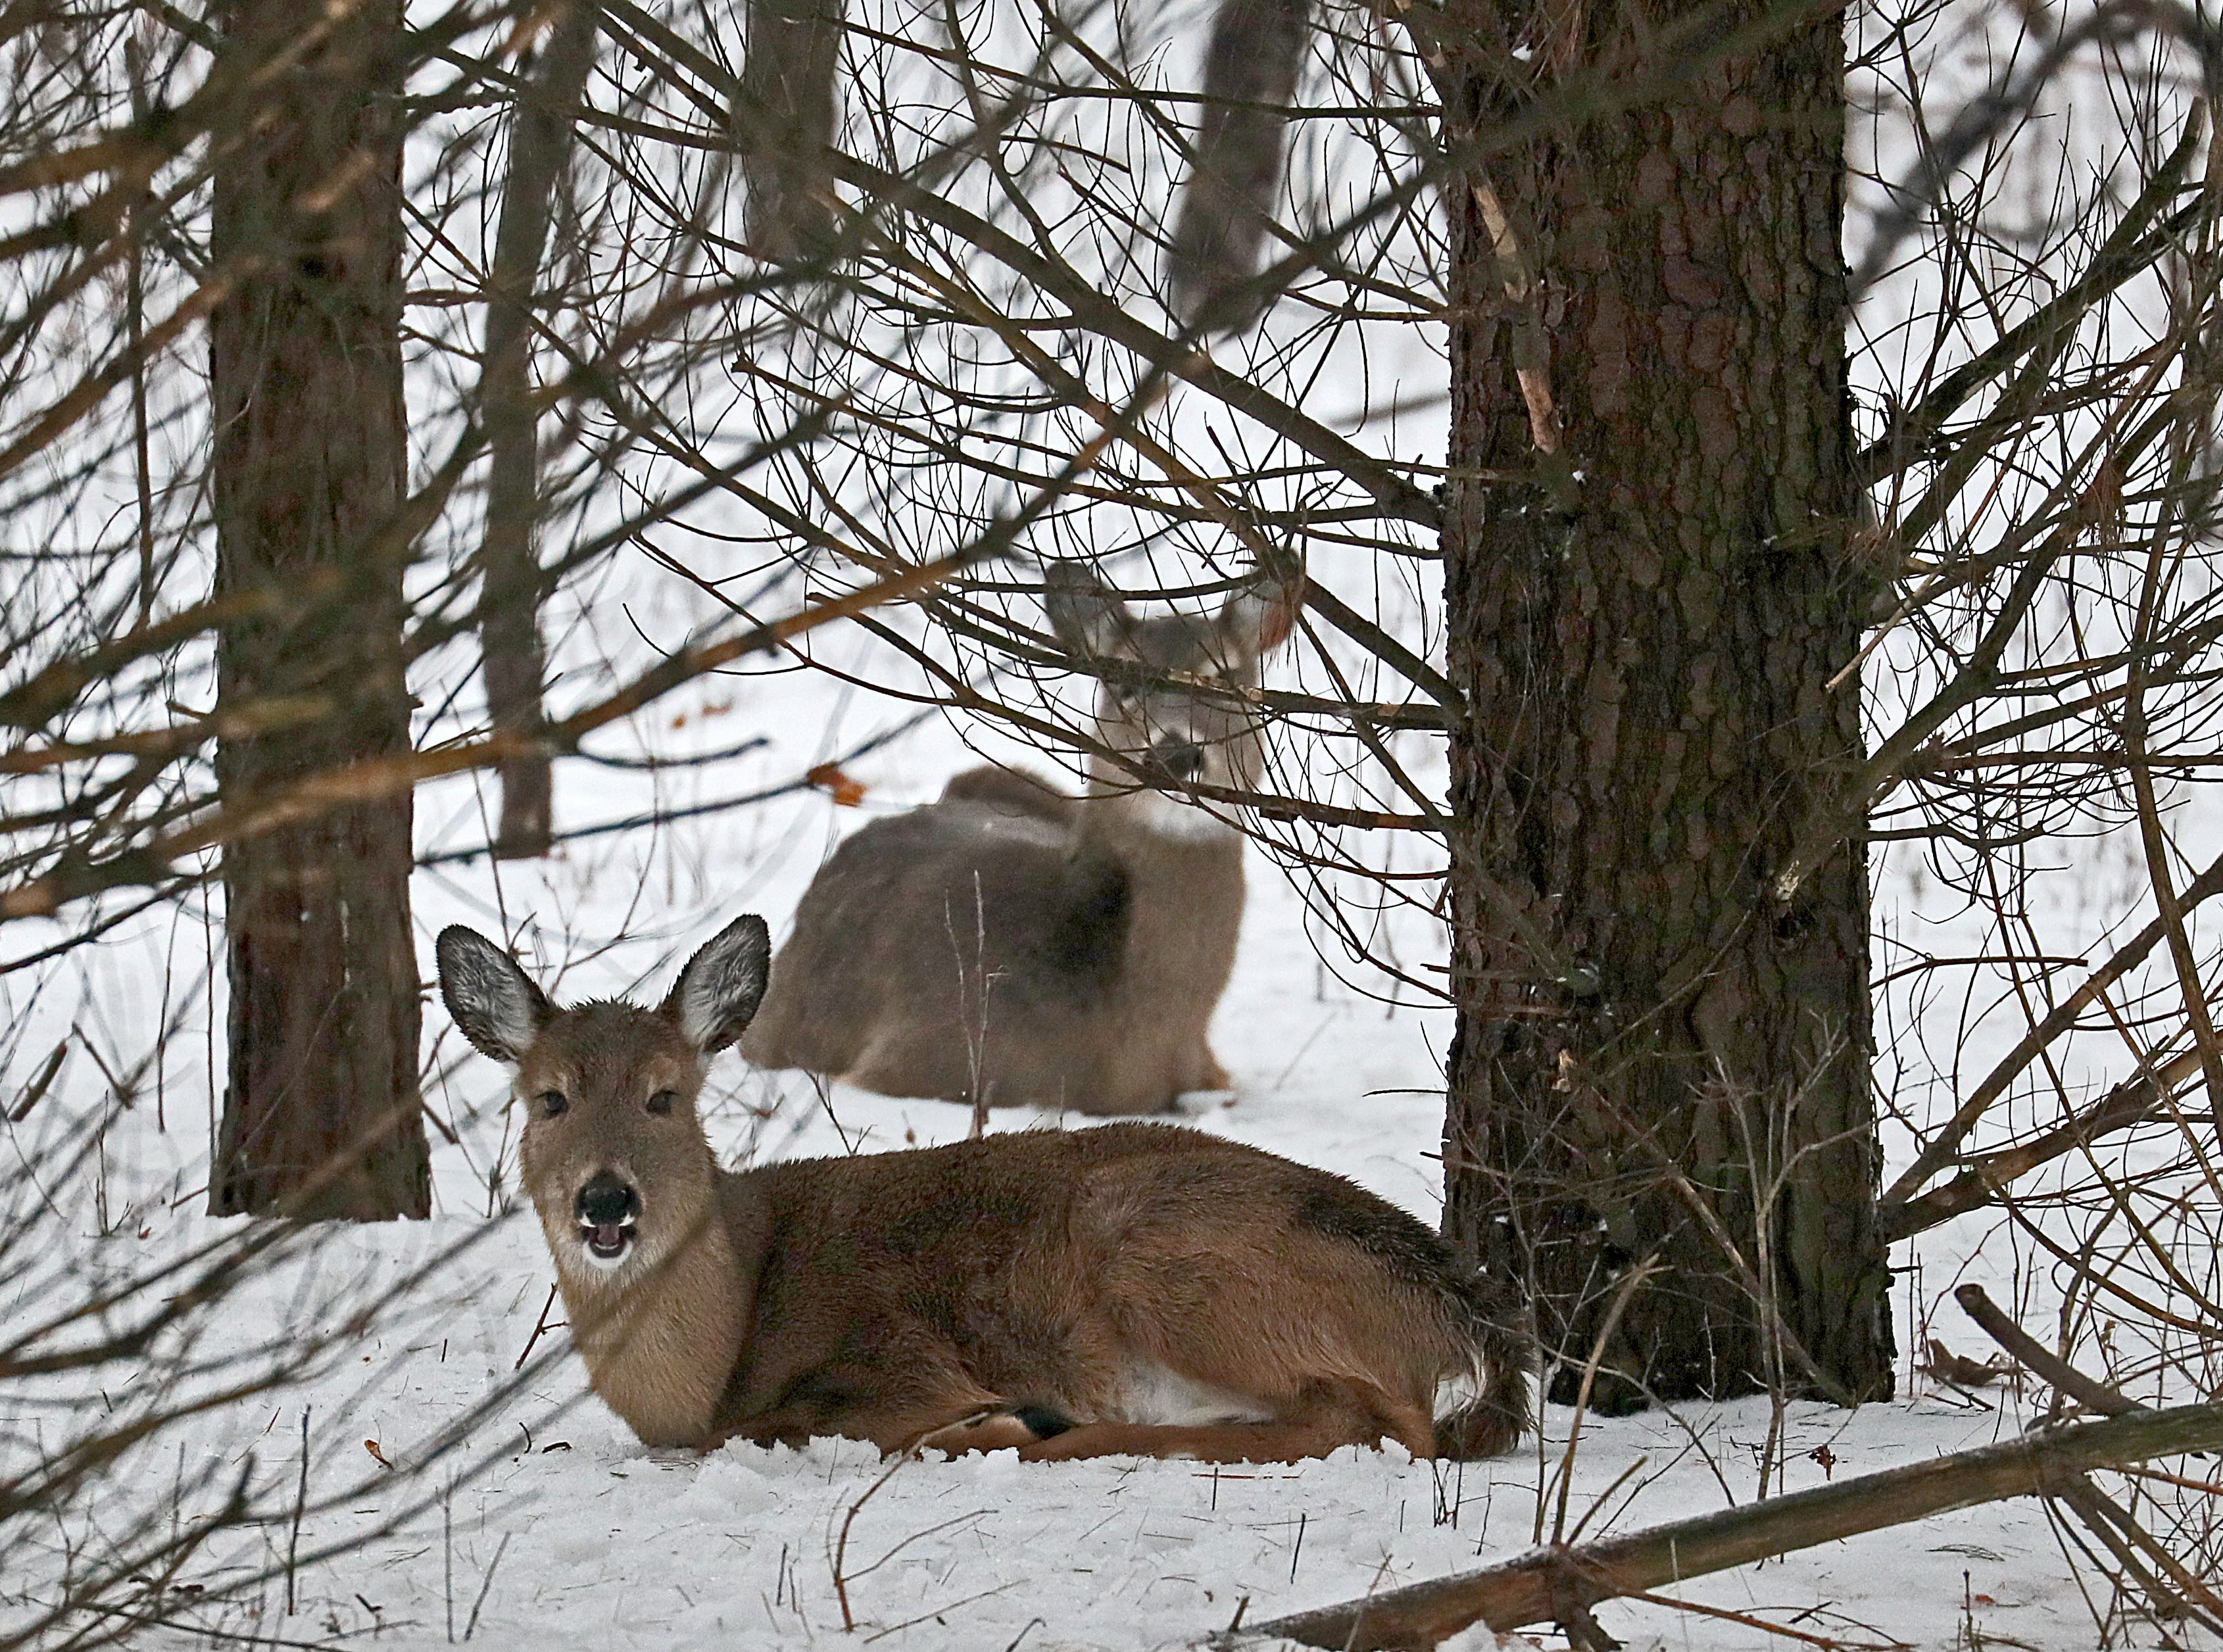 Deer are bedded down at Kettle Moraine State Forest-Lapham Peak Unit in Delafield Sunday. They were unperturbed by the gusty winds and a passerby.